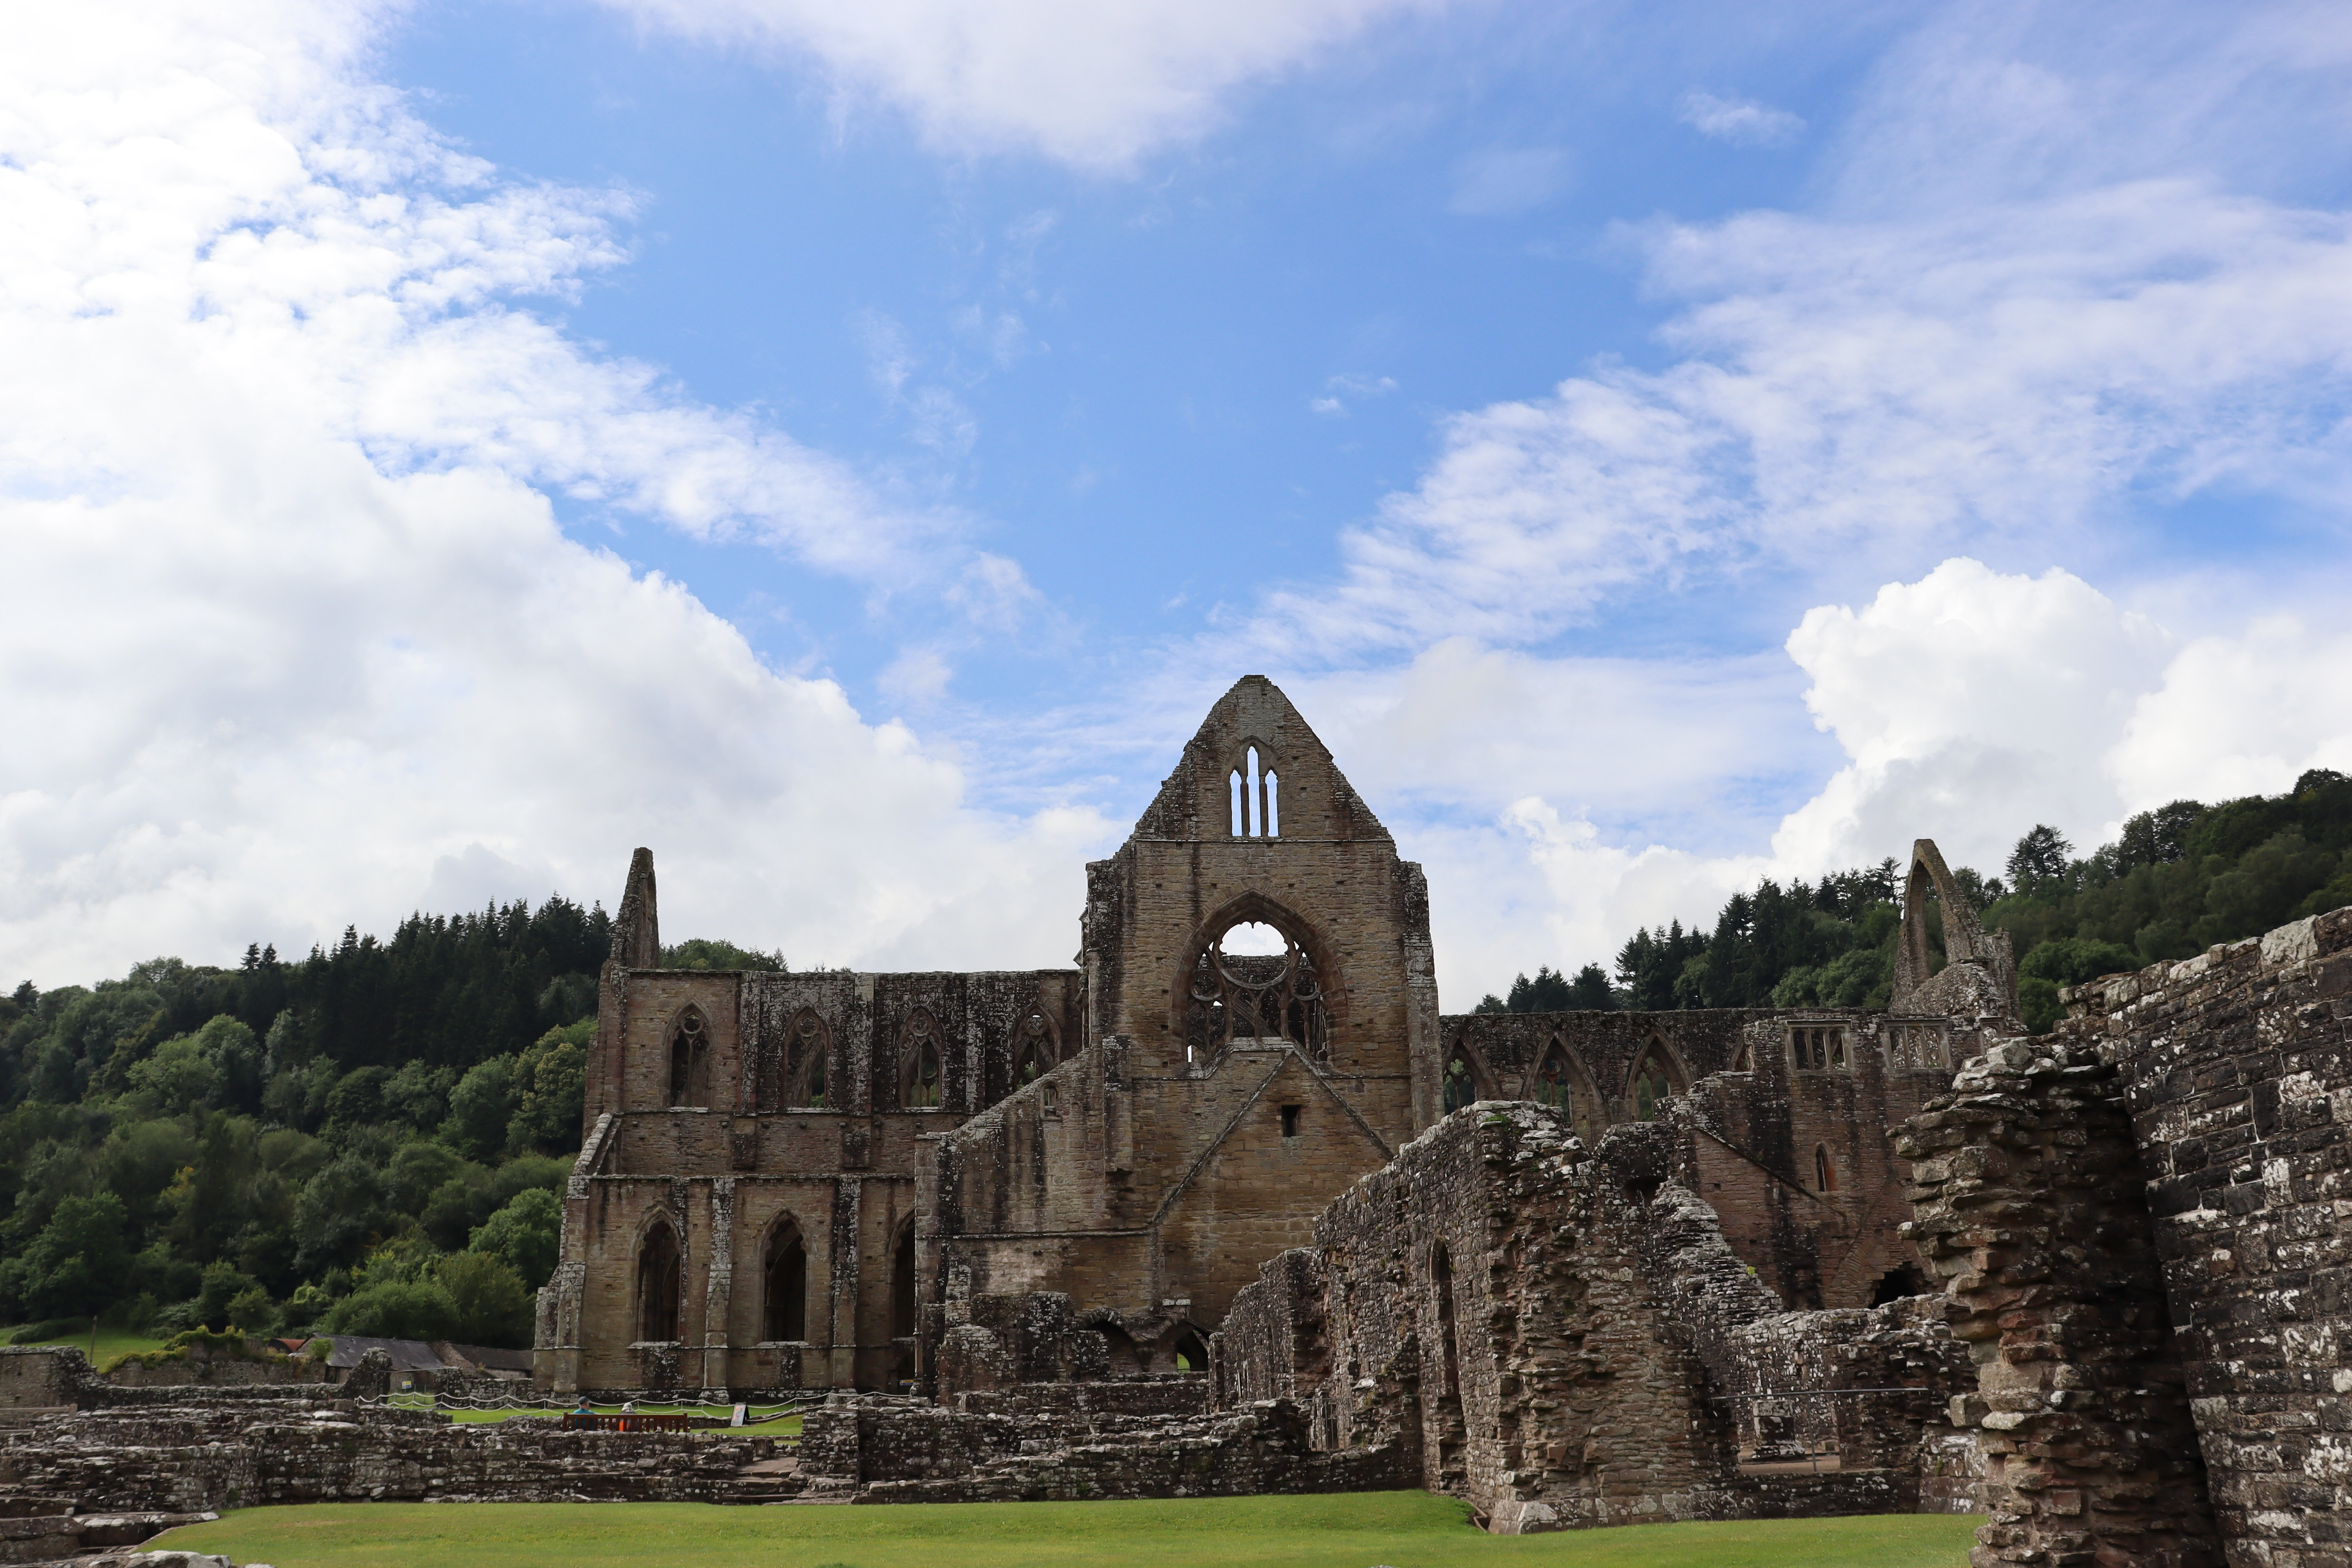 View of Tintern Abbey with ruins in the foreground.